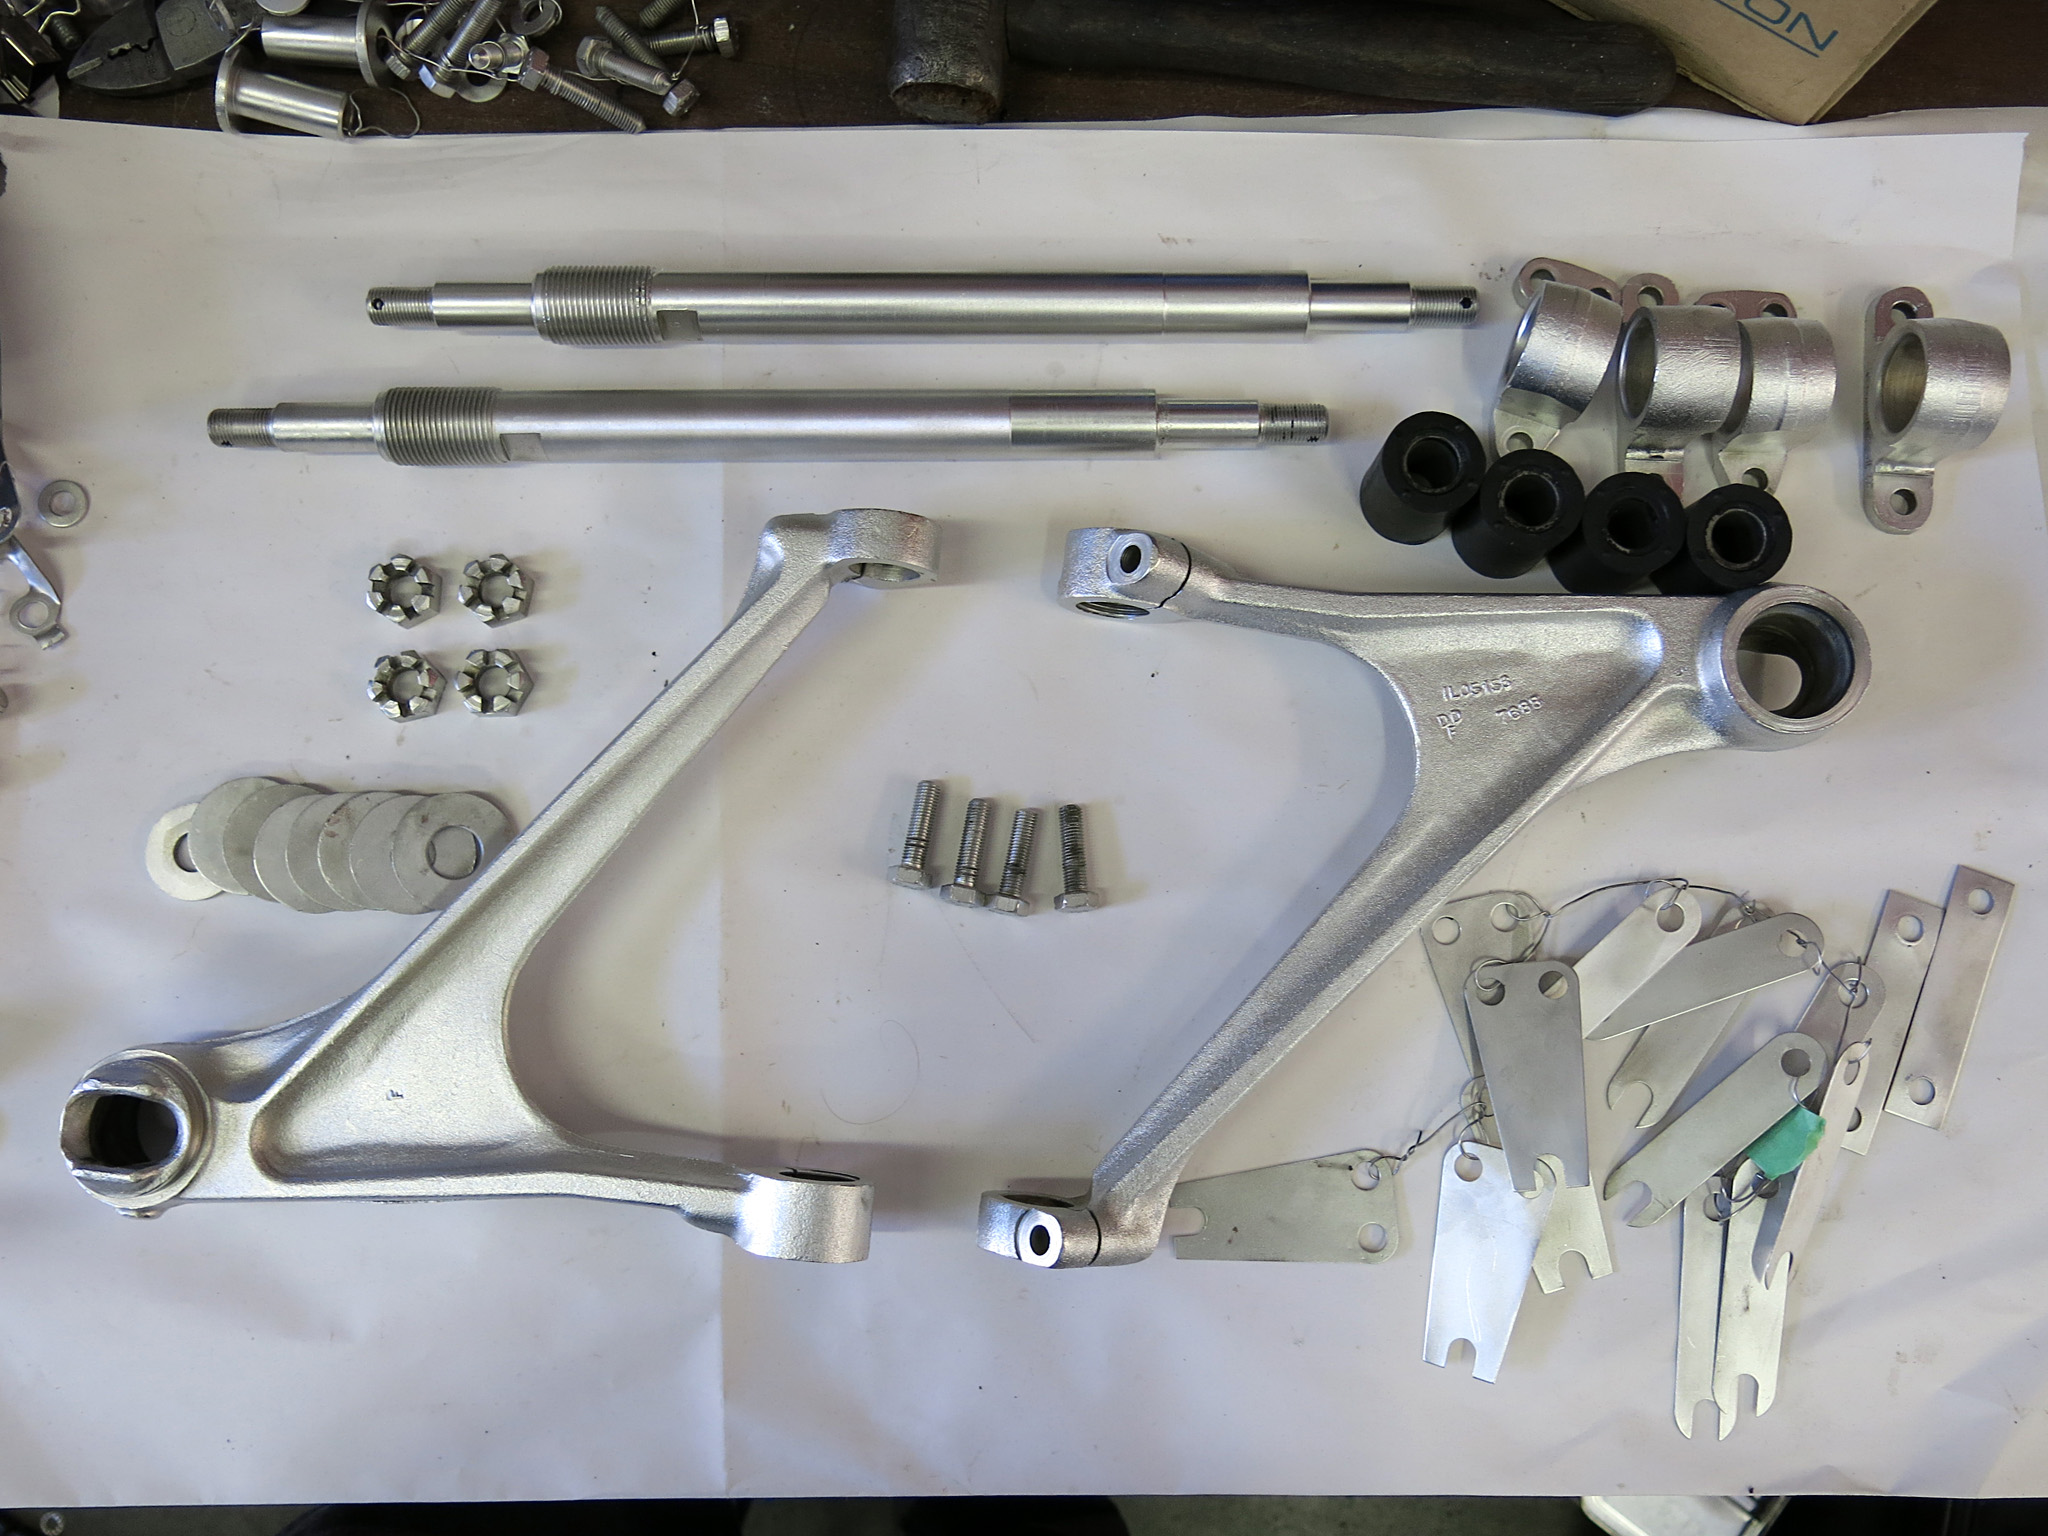 Plated pieces for the upper control arm were restored by Electroshine Metal Refinshers Ltd.  Their fine work reveals all the intricate machining of these parts. These were CAD plated without ACID pickling to avoid embrittlement. Original finish from 1965 was bright silver zinc .